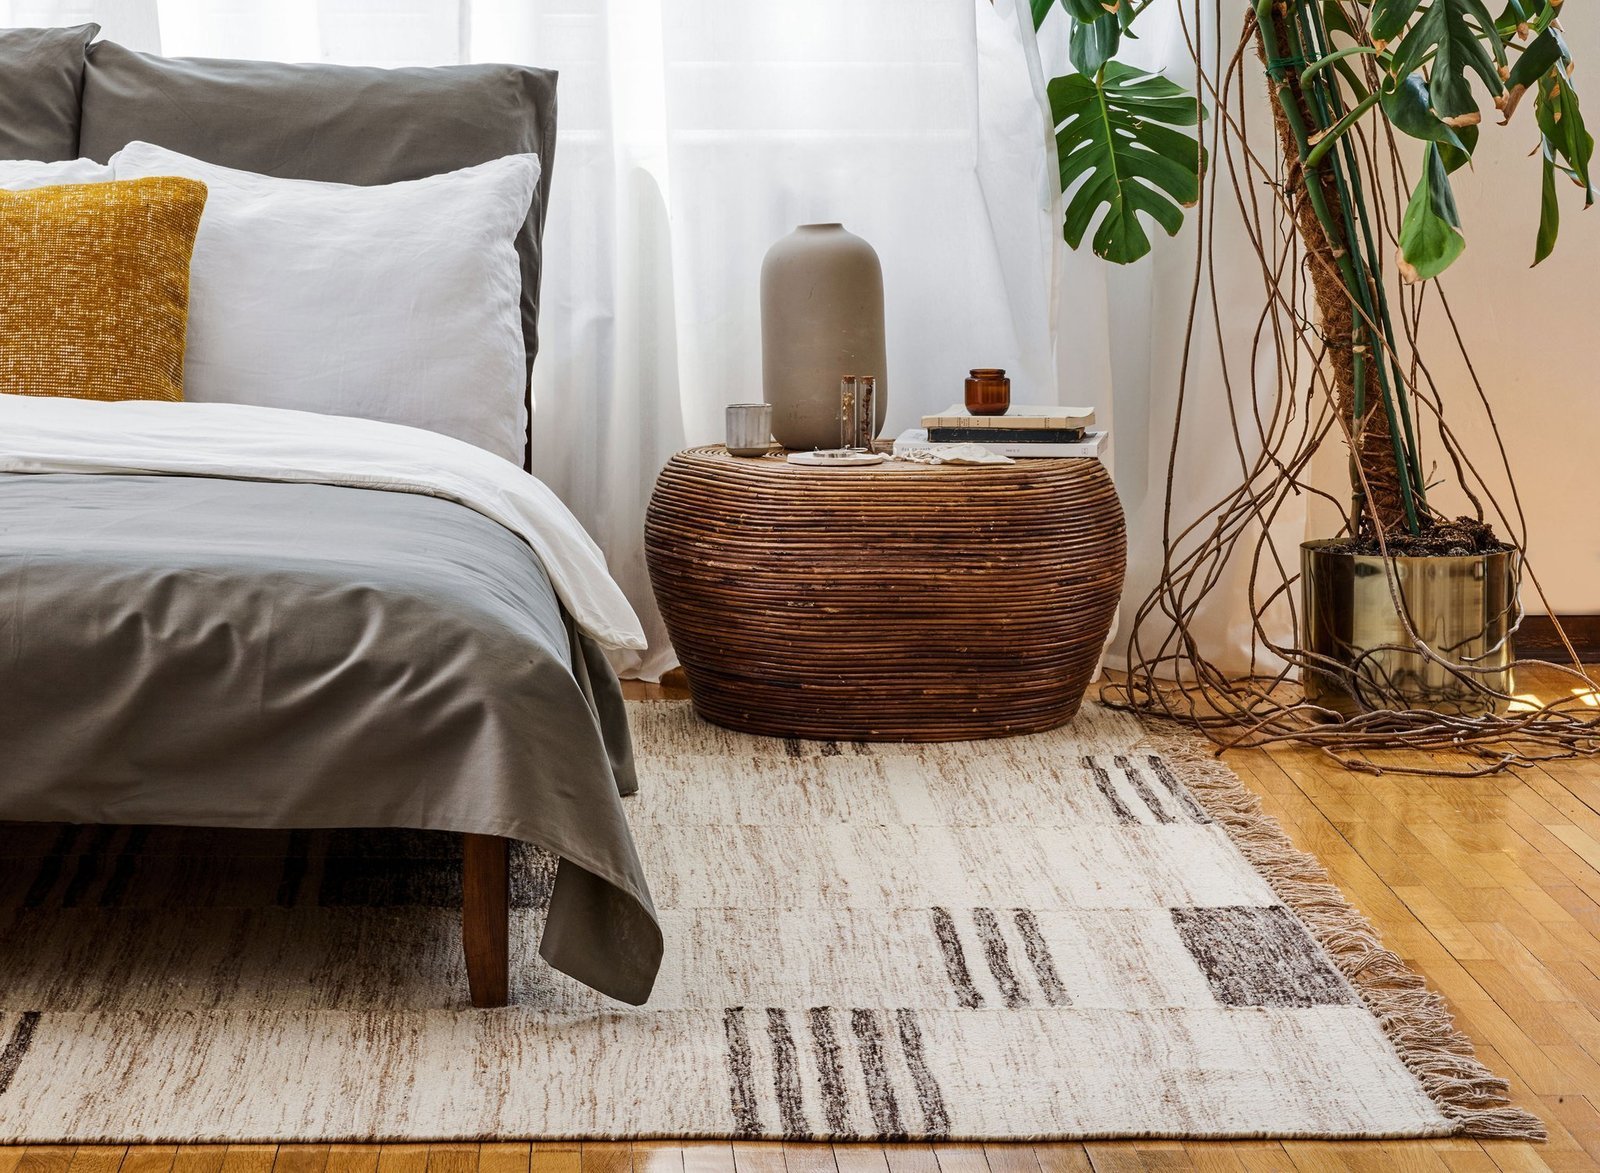 Best Affordable Bedroom Rugs - Dwell